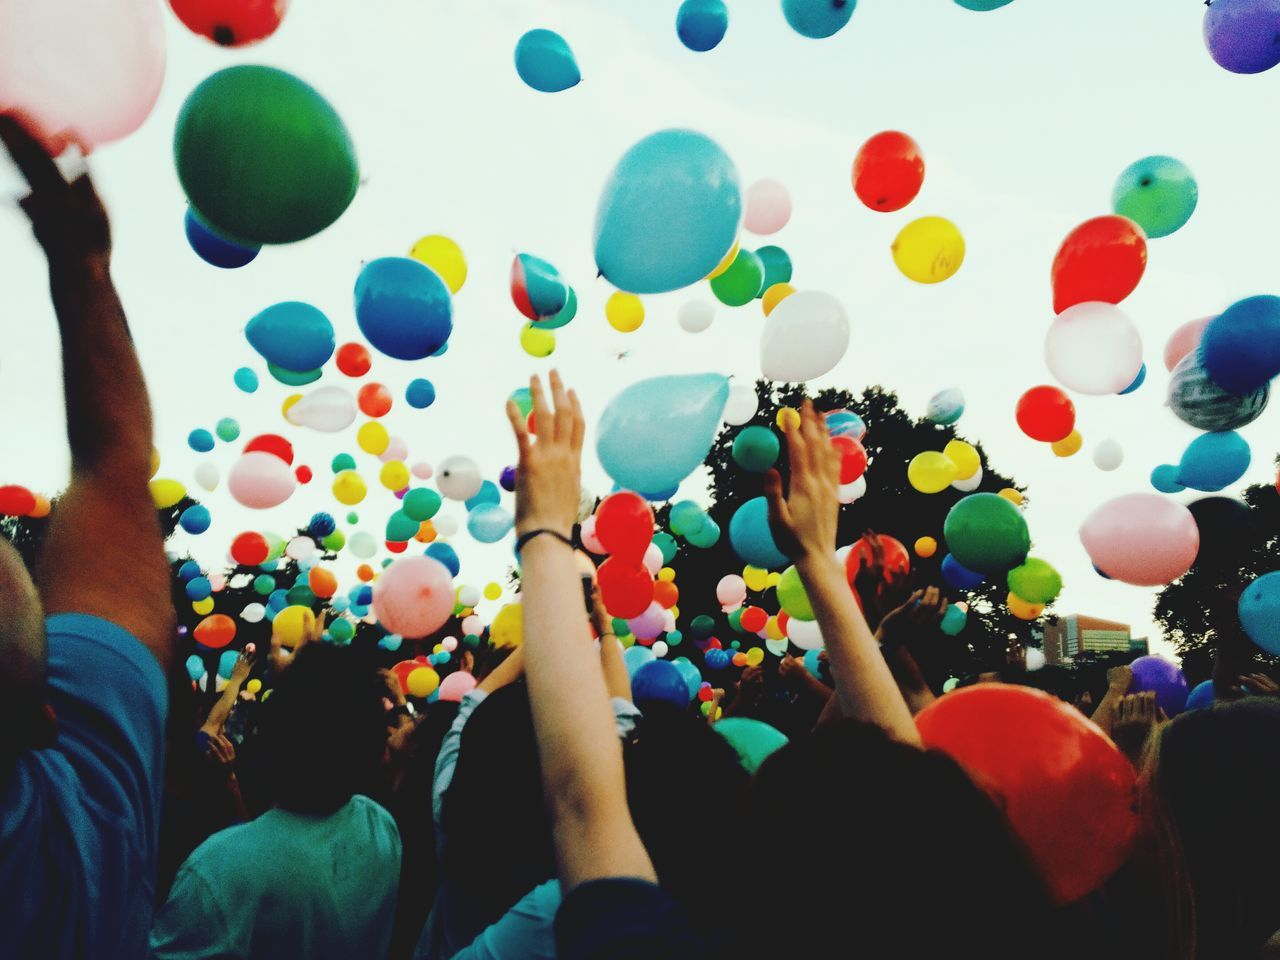 Beautiful stock photos of community, Arms Raised, Balloon, Celebration, Colorful